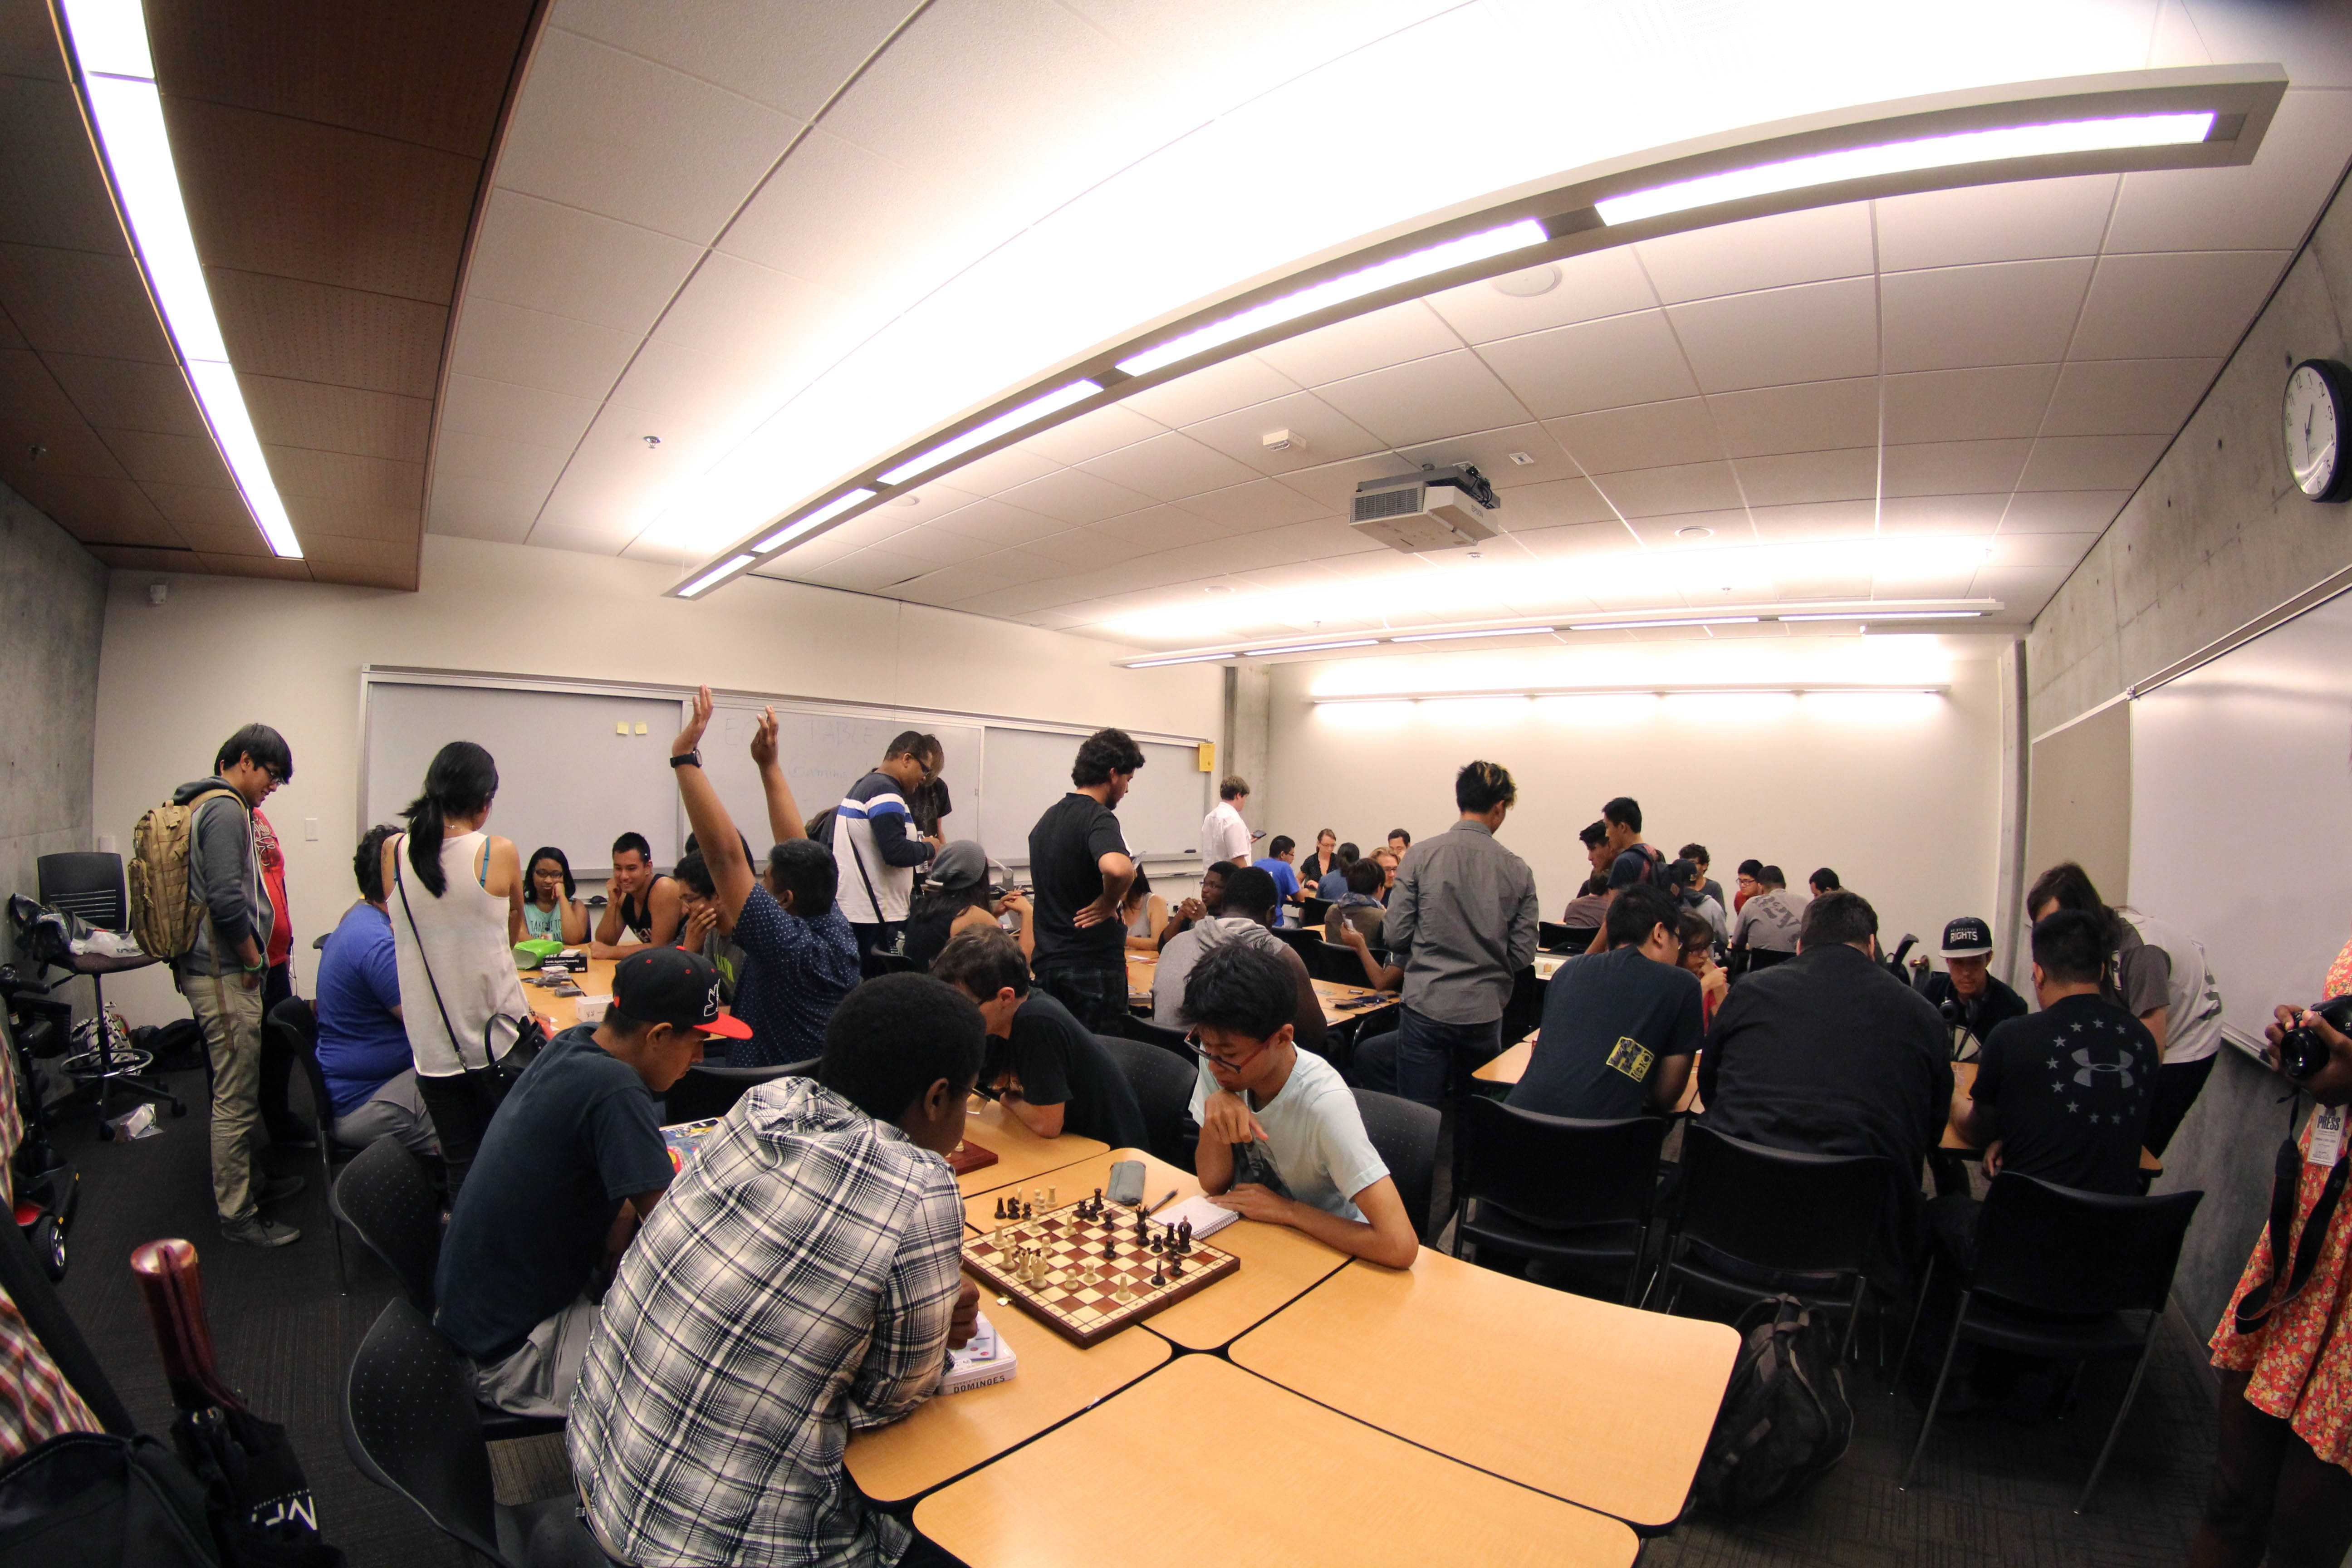 New club connects students through gaming